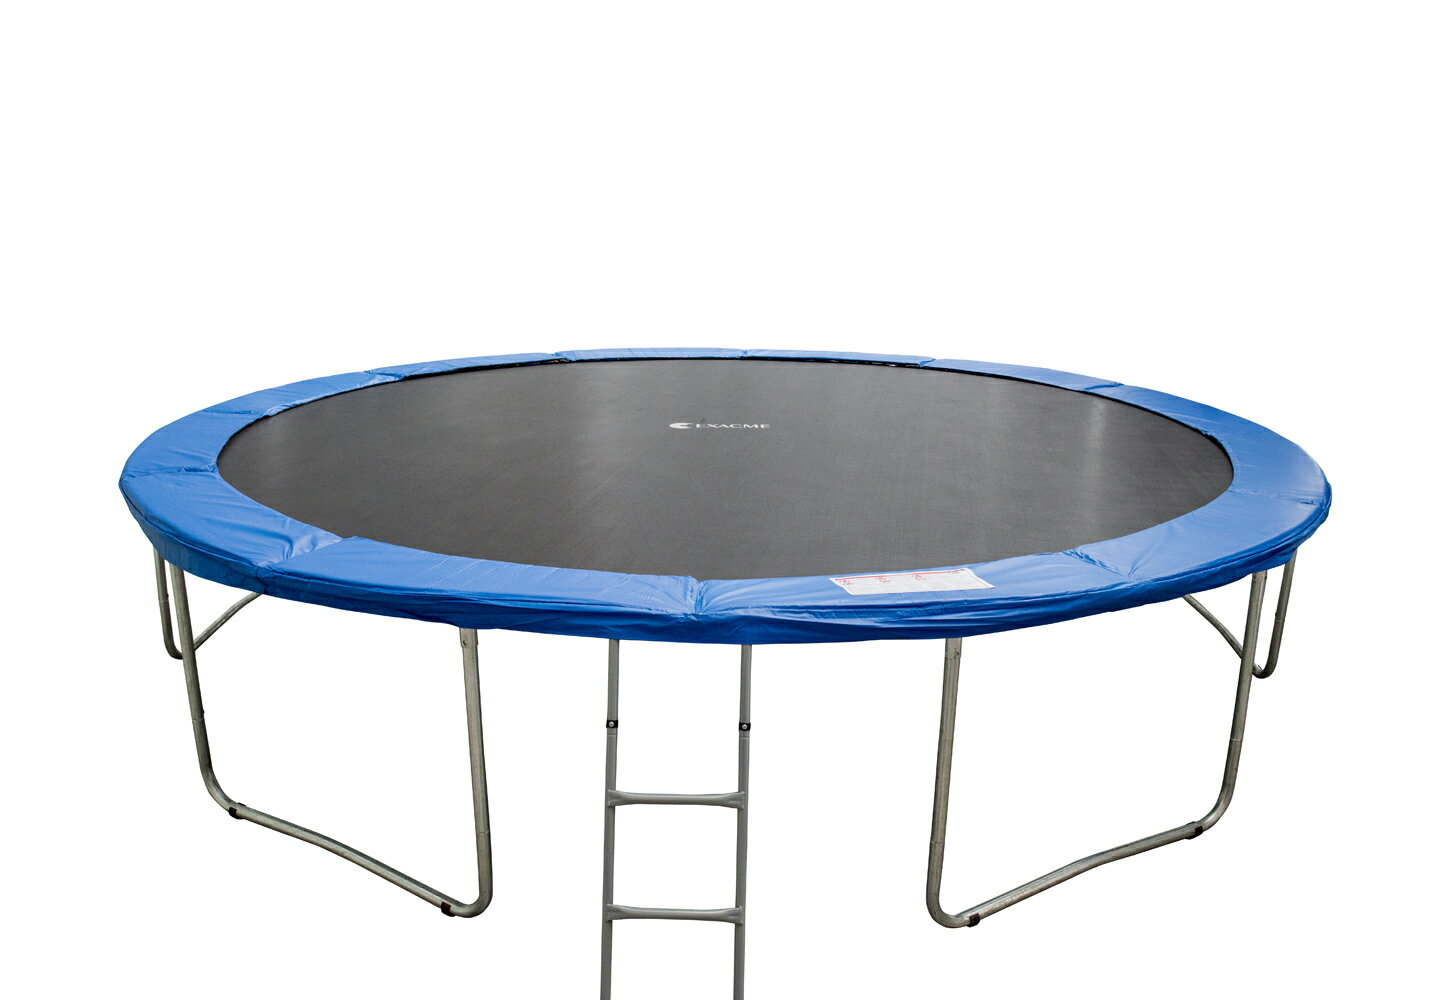 ExacMe 16 FT Inner Trampoline w/ Enclosure Net Ladder ALL-IN-ONE COMBO C16 1